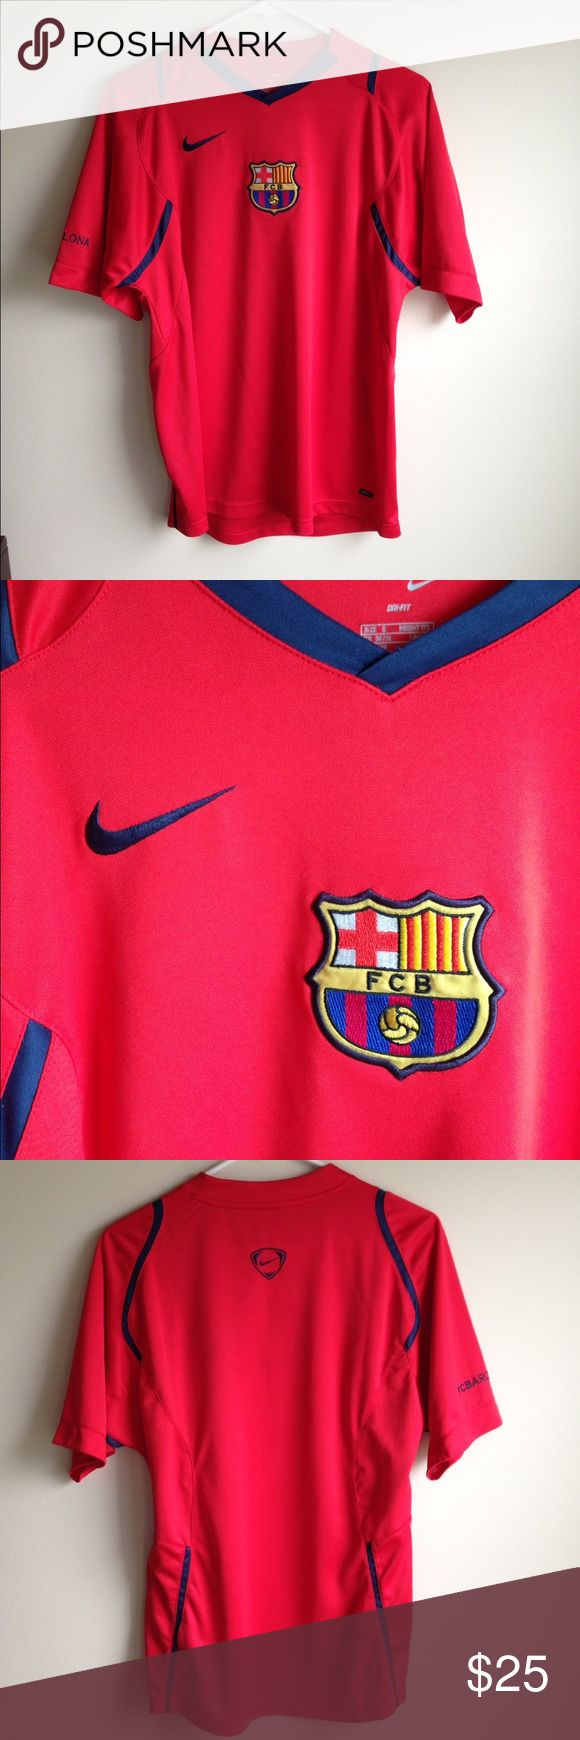 FC Barcelona jersey FC Barcelona training top in like new condition. Worn once. Bought in Barcelona! Nike Shirts Tees - Short Sleeve